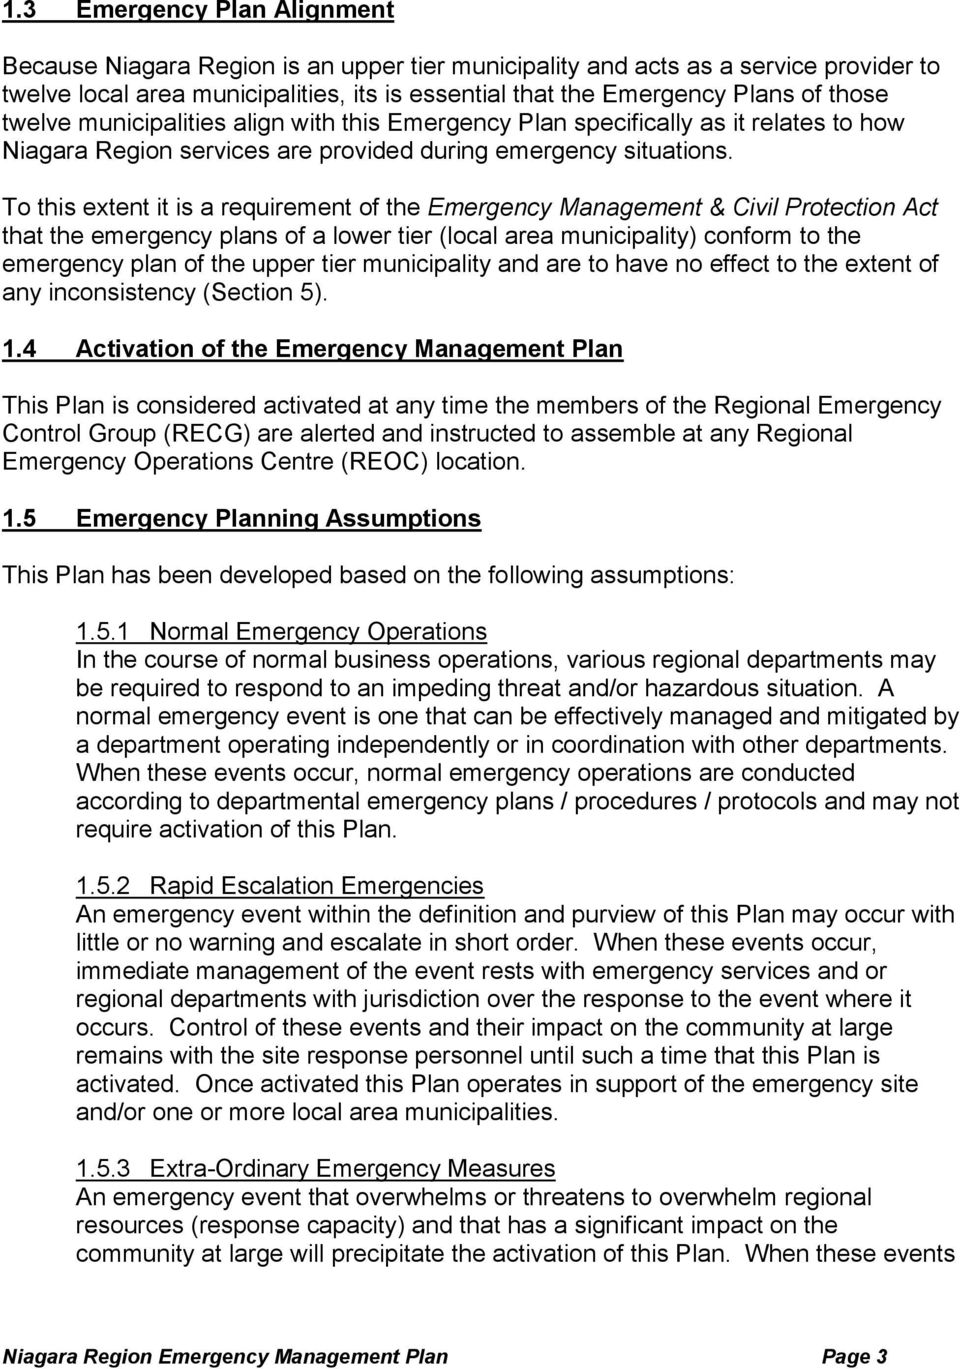 To this extent it is a requirement of the Emergency Management & Civil Protection Act that the emergency plans of a lower tier (local area municipality) conform to the emergency plan of the upper